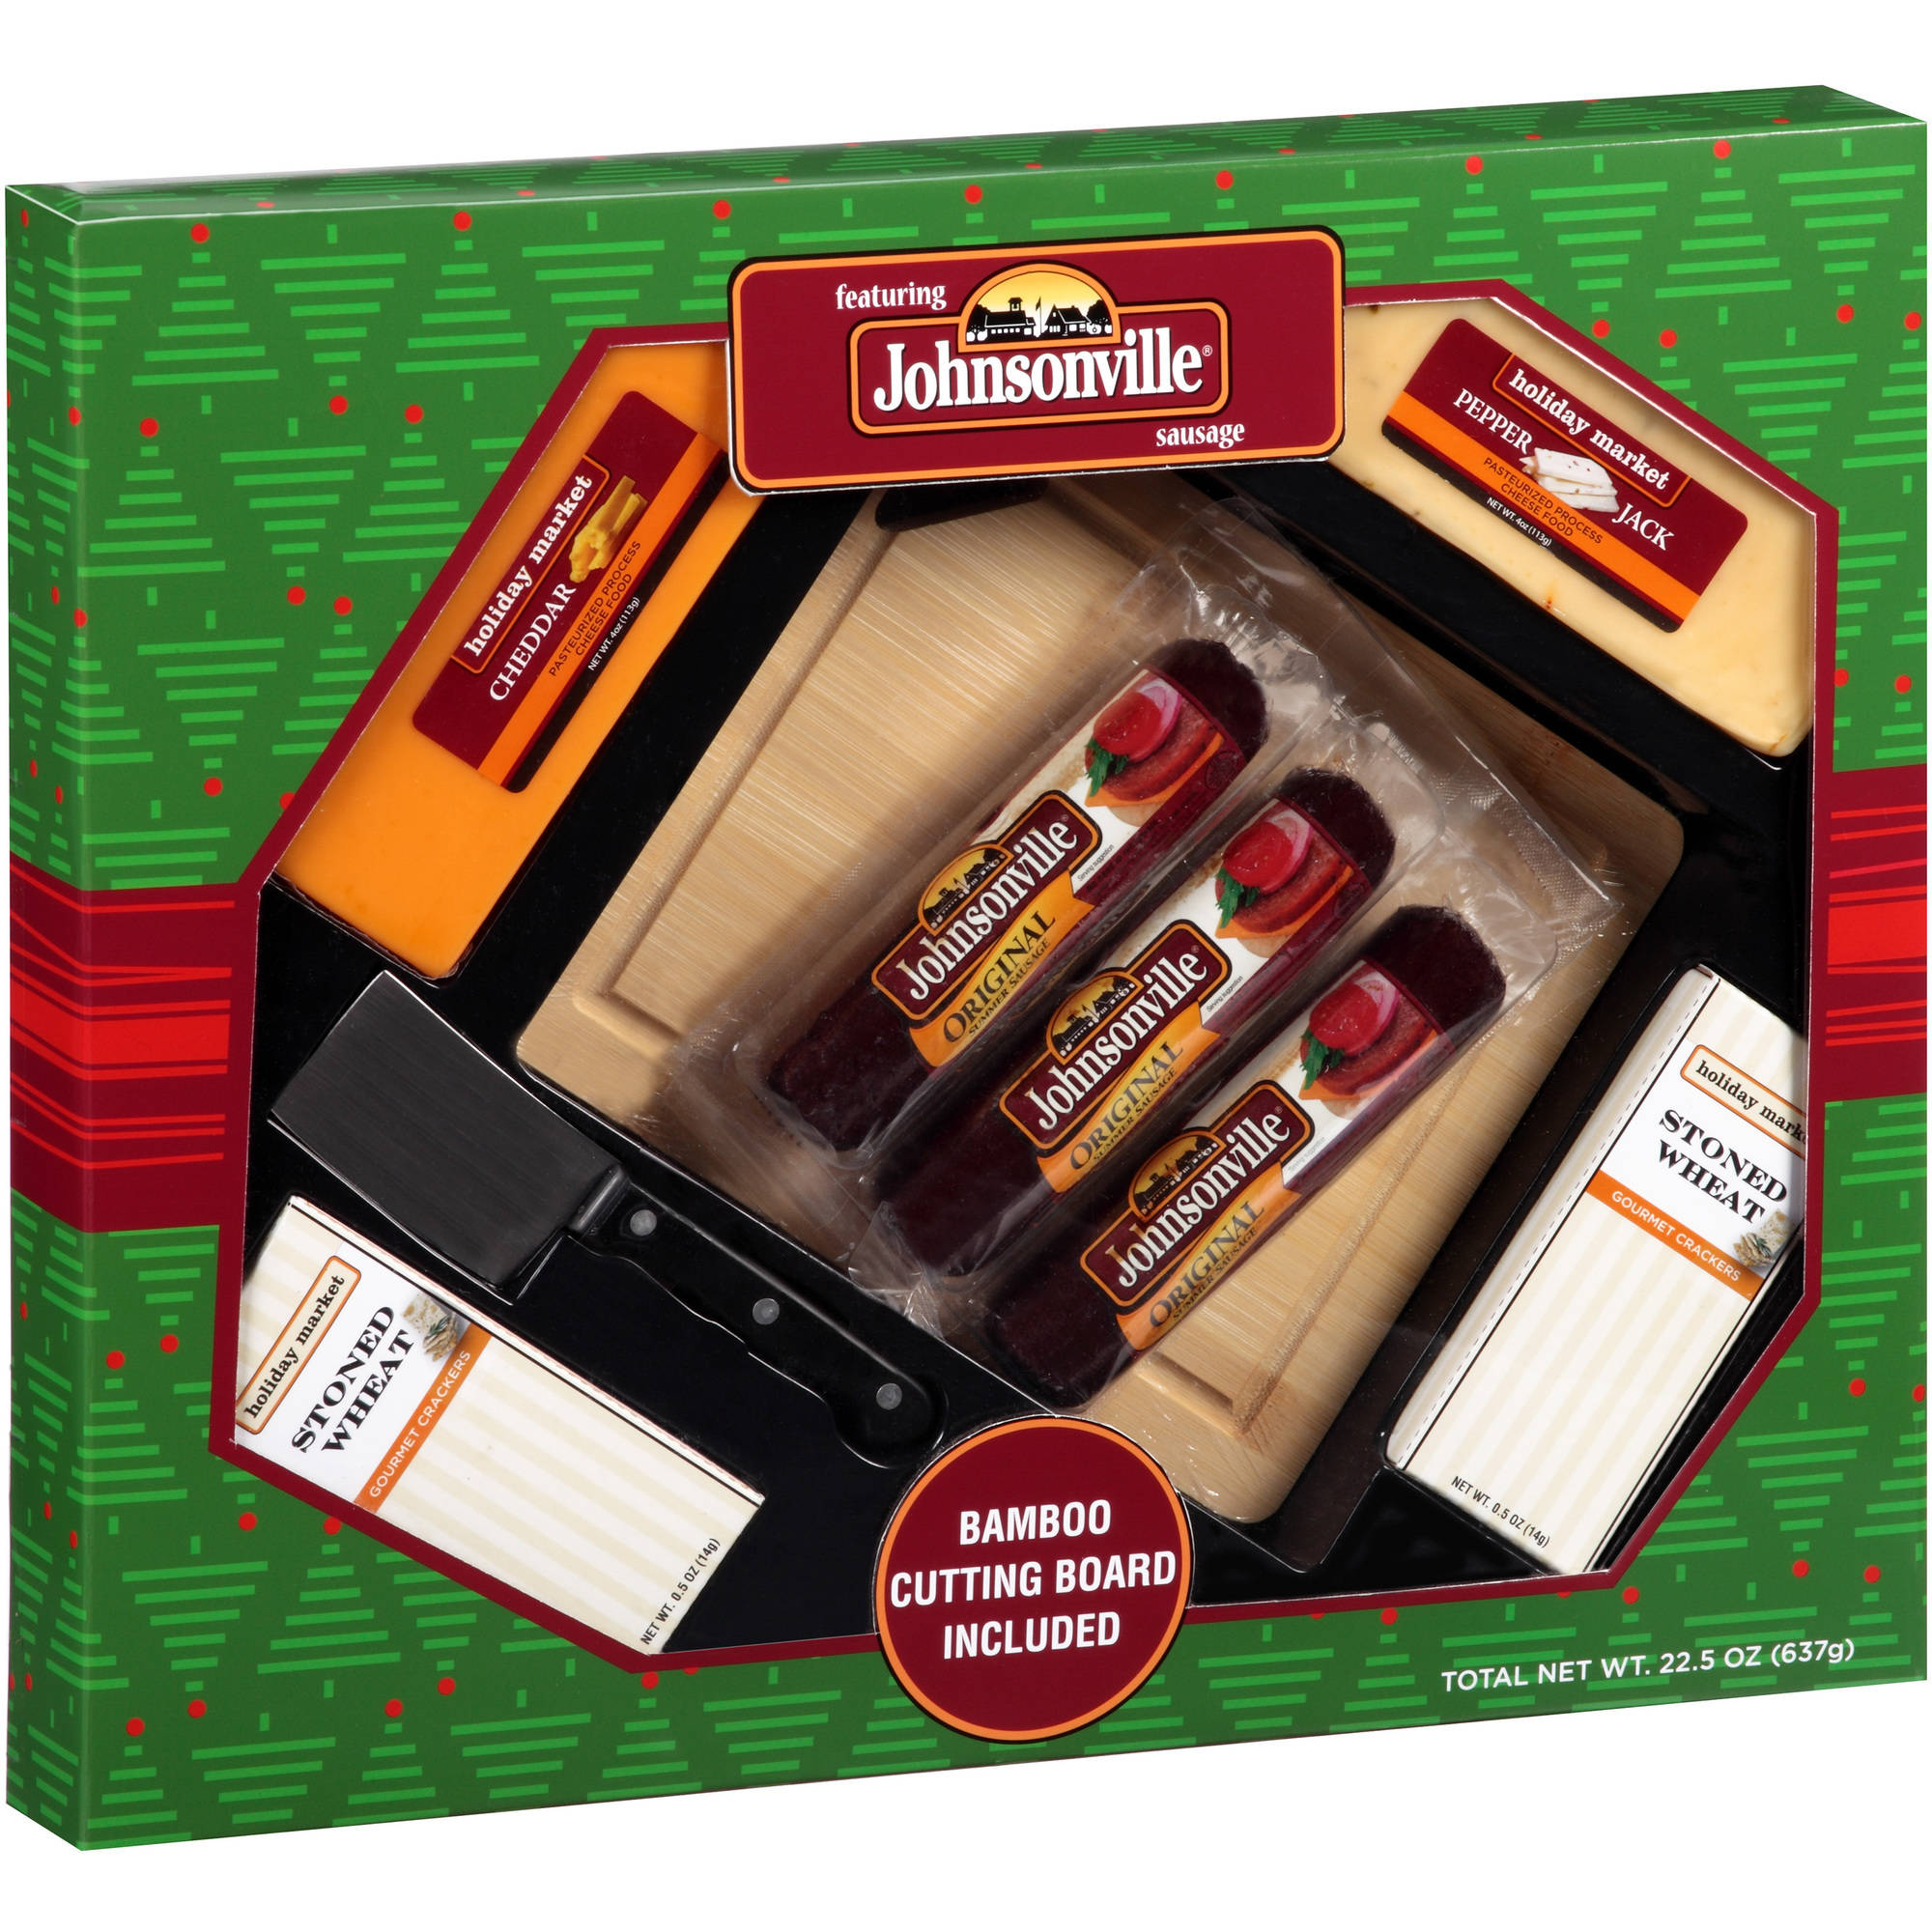 Johnsonville Holiday Feast Box Sausage Cheese & Crackers Set Gift, 9 pc